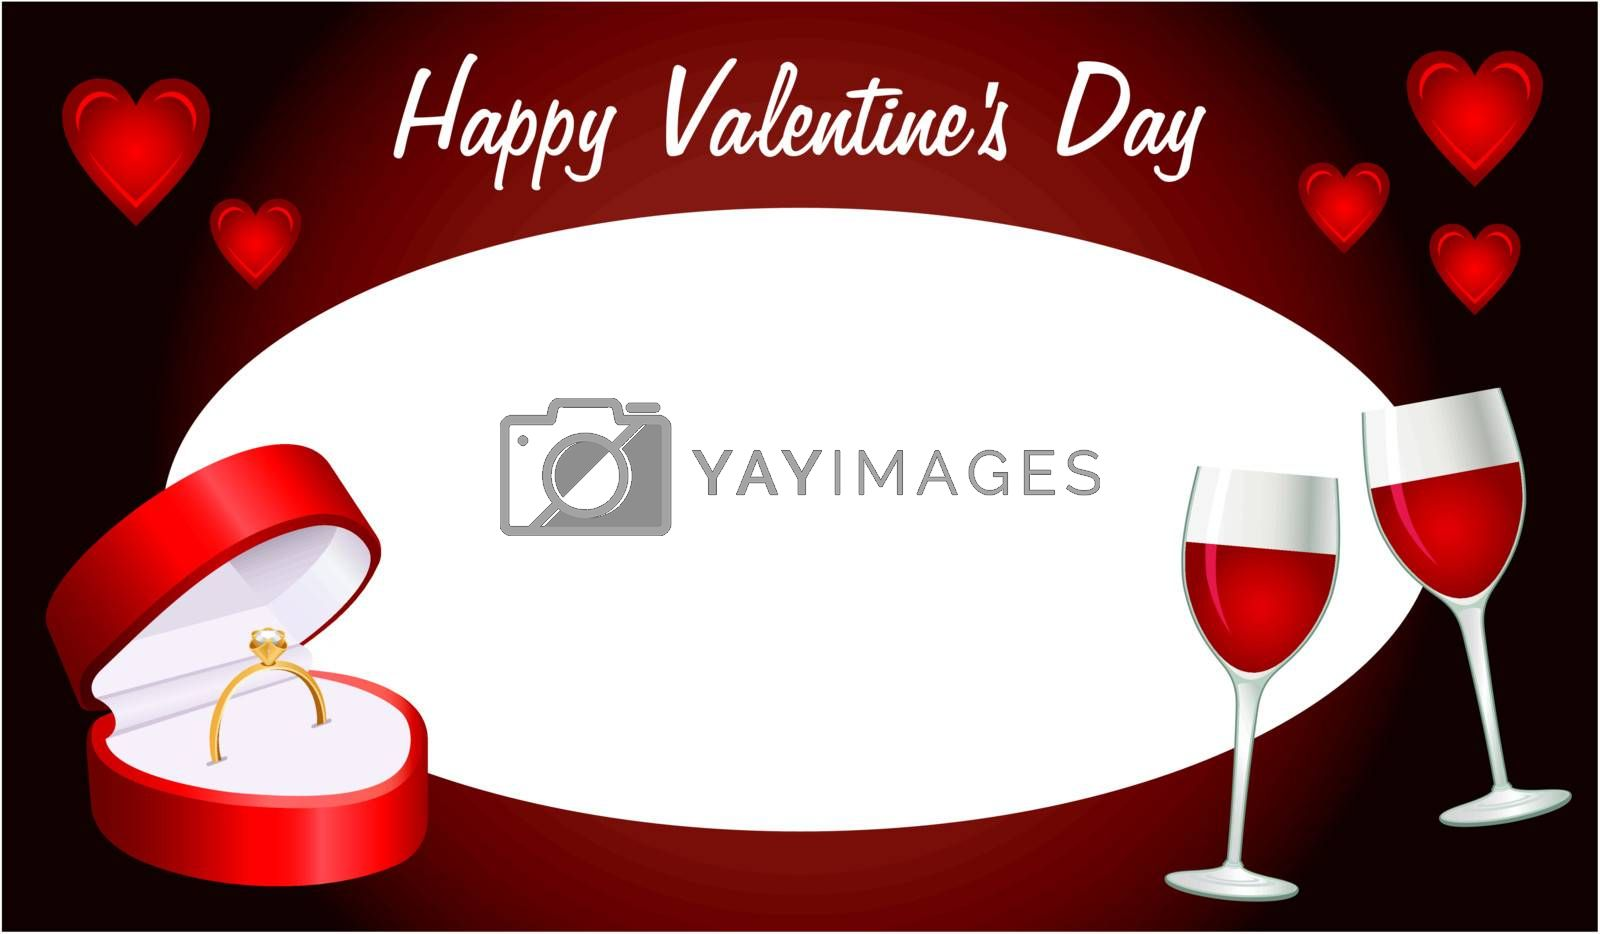 Image of greeting card for Valentines Day.